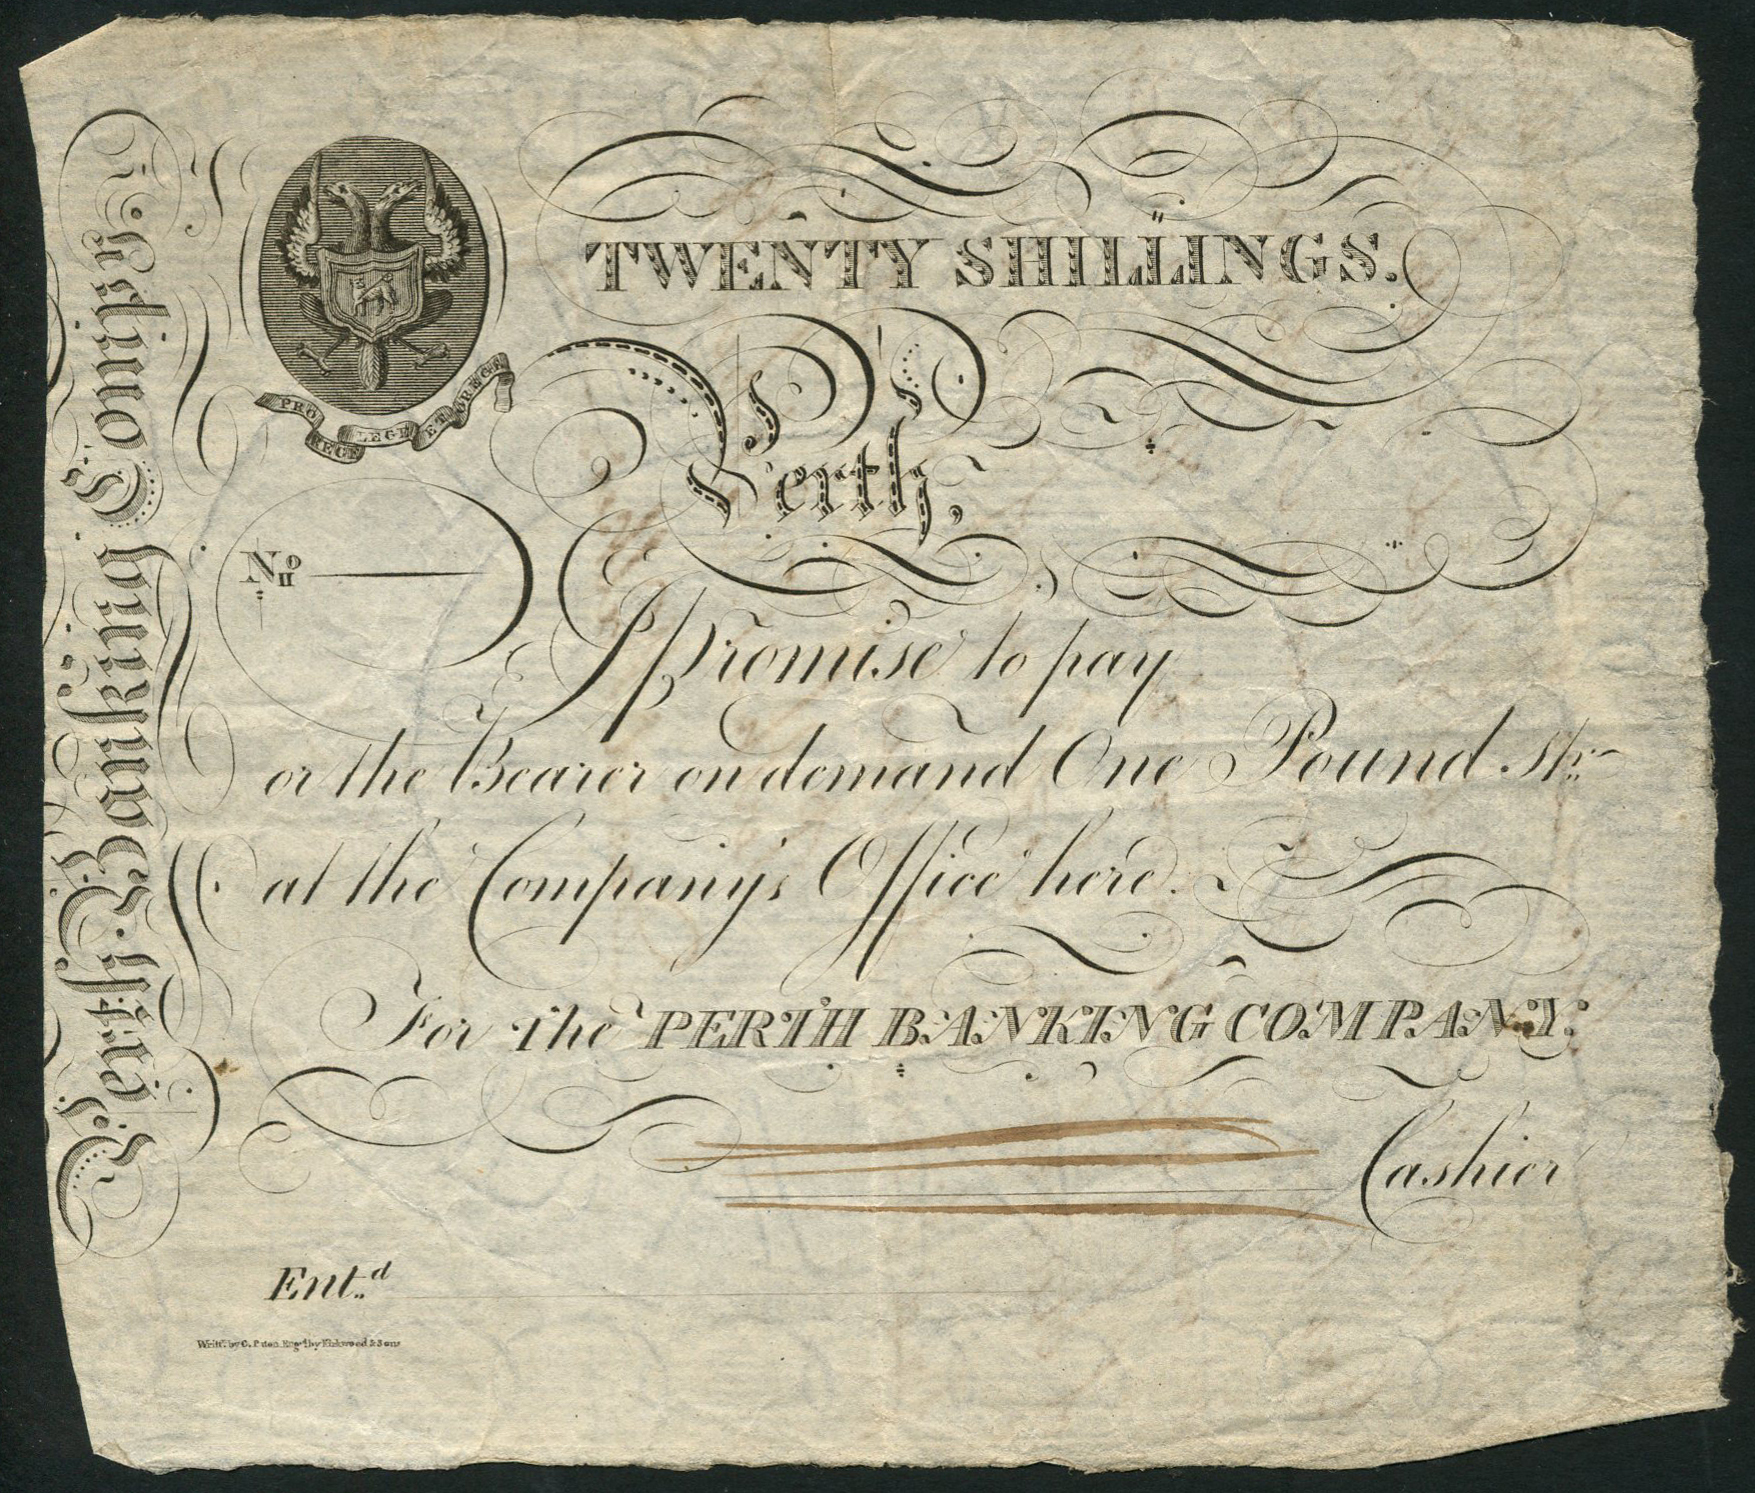 Perth Banking Company one pound note, not issued,but dated in or around 1808 making it one of Perth's oldest surviving banknotes.